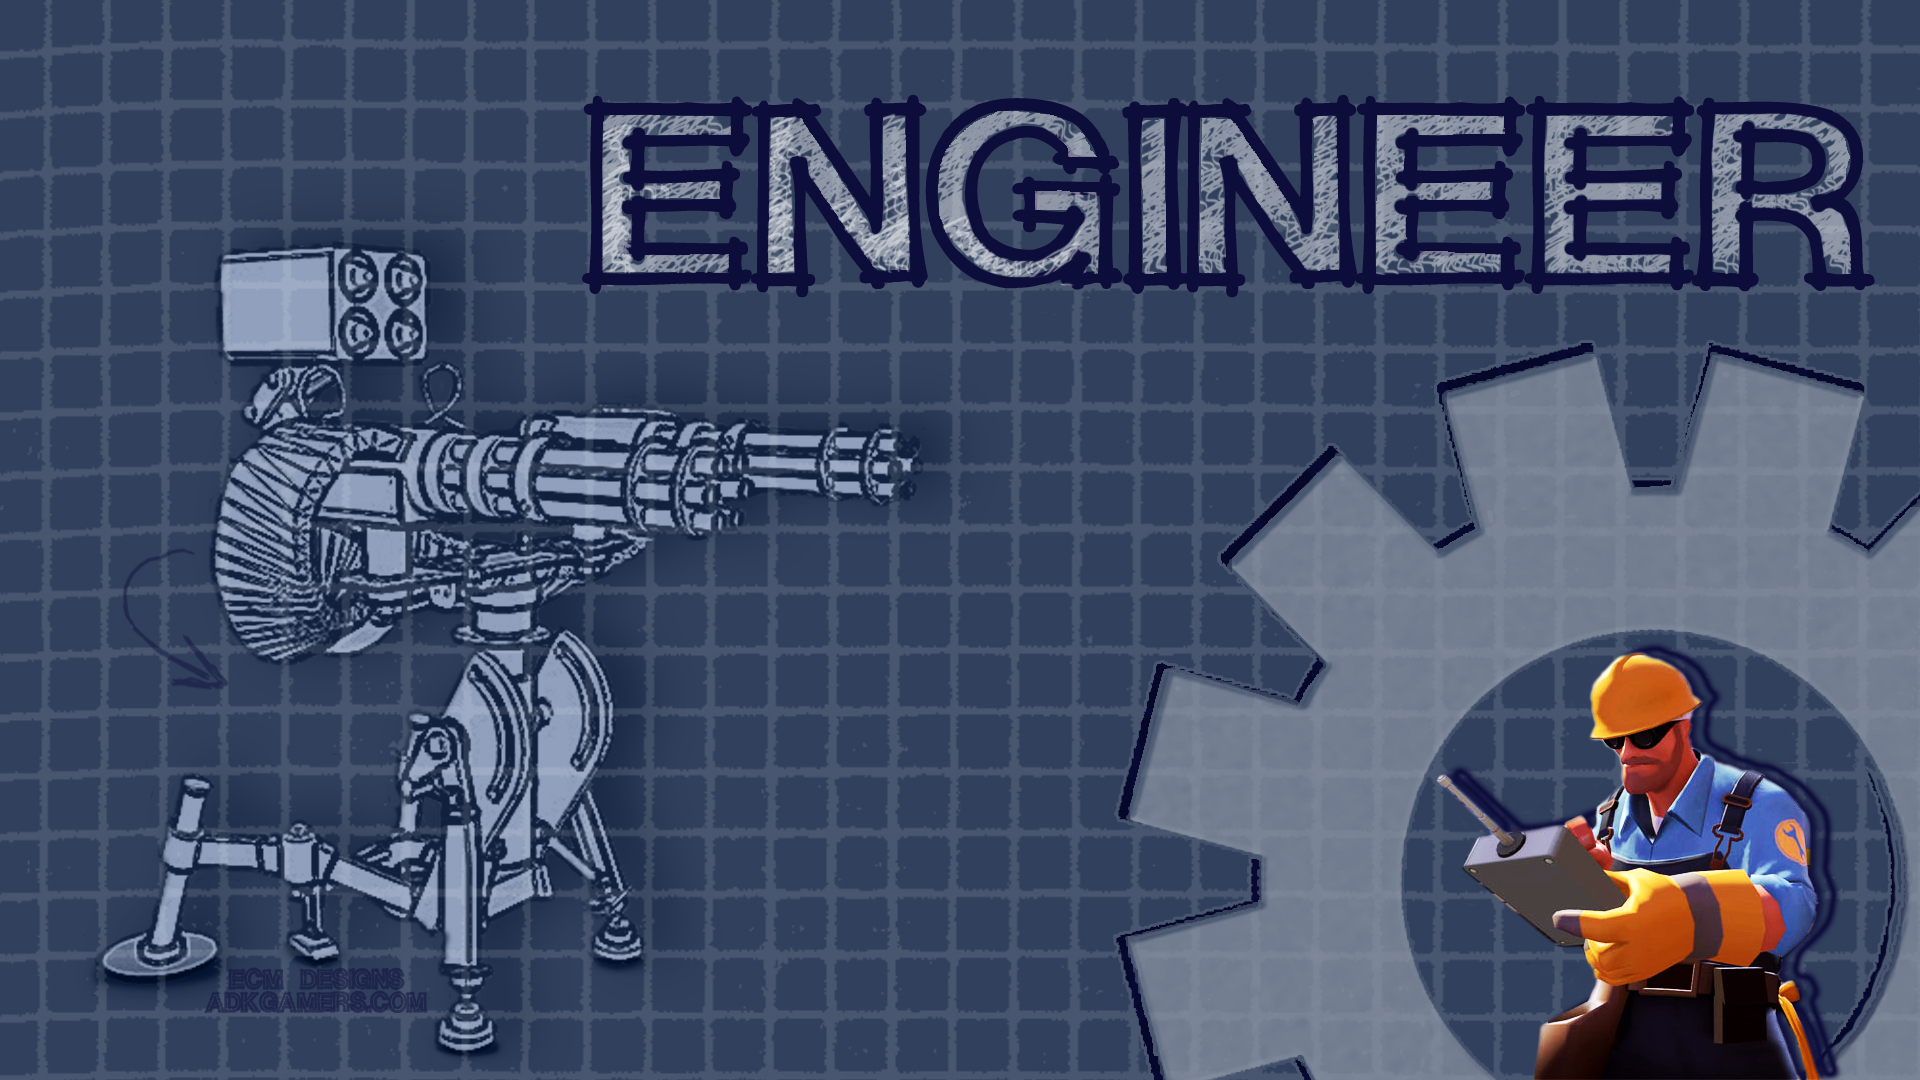 Wallpapers Of The Day: Engineer | 1920x1080 px Engineer Backgrounds